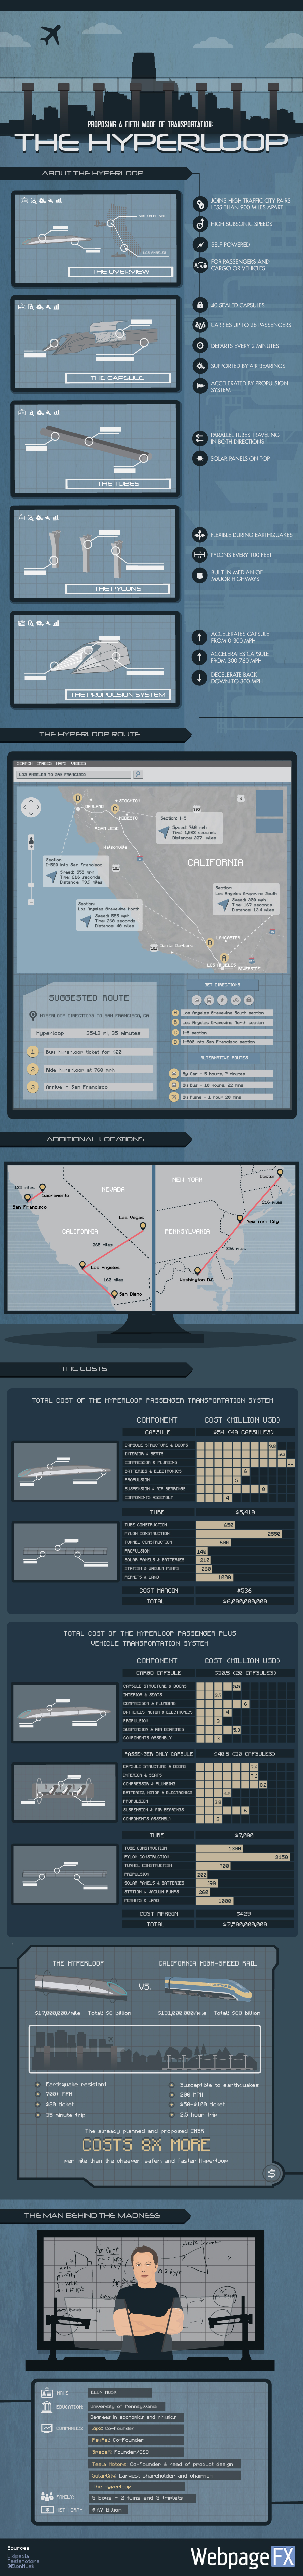 The-Hyperloop-Infographic